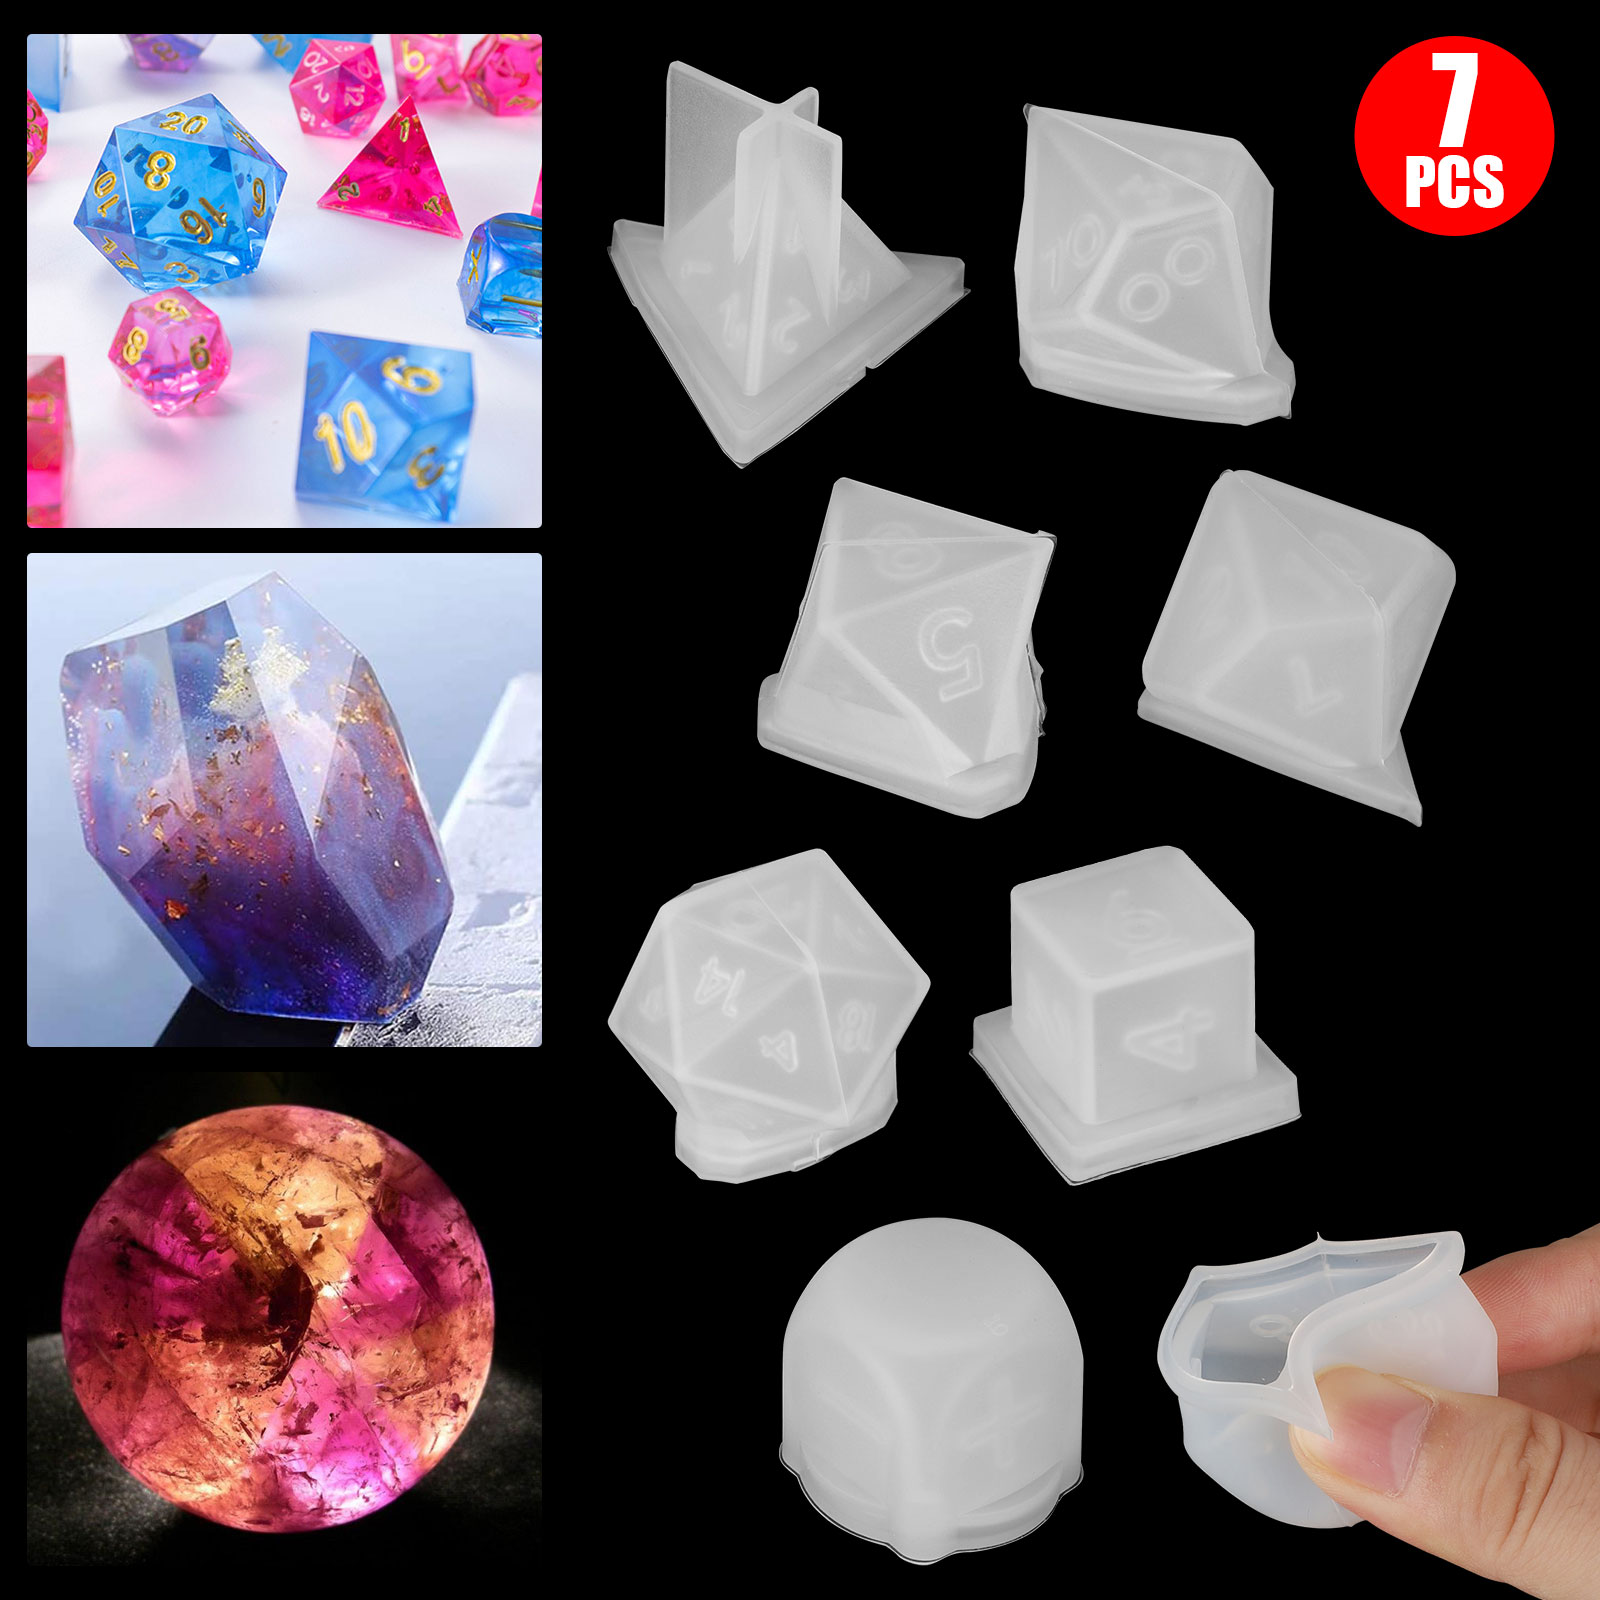 Lot-Resin-Casting-Silicone-Molds-Epoxy-Spoon-Jewelry-Making-Pendant-Craft-DIY-US thumbnail 15